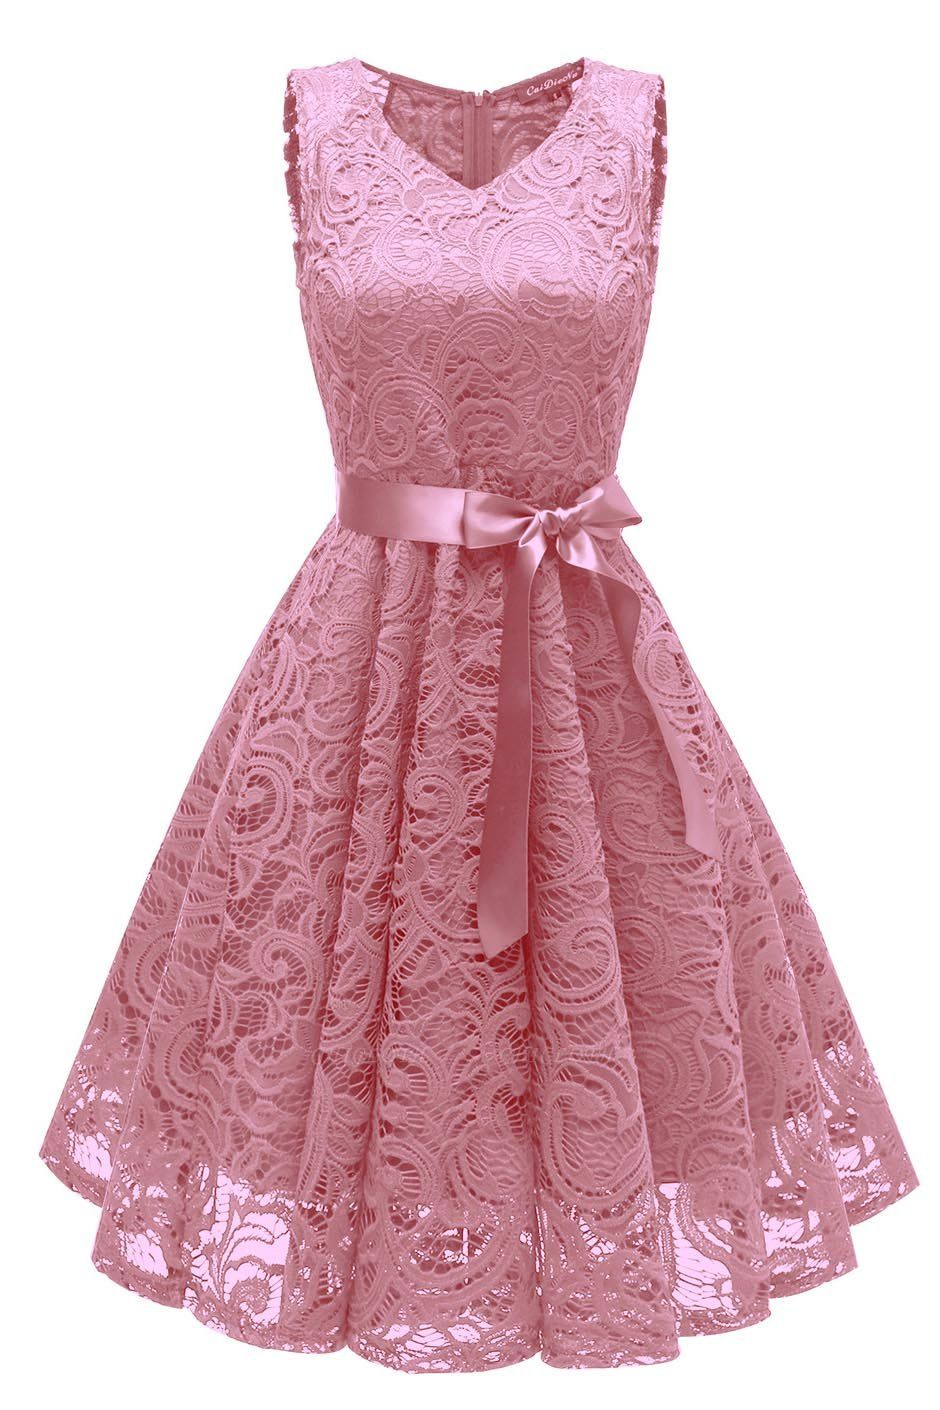 A  Chicloth Women's 1940s Vintage Rockabilly Ball Gown Flared Dress